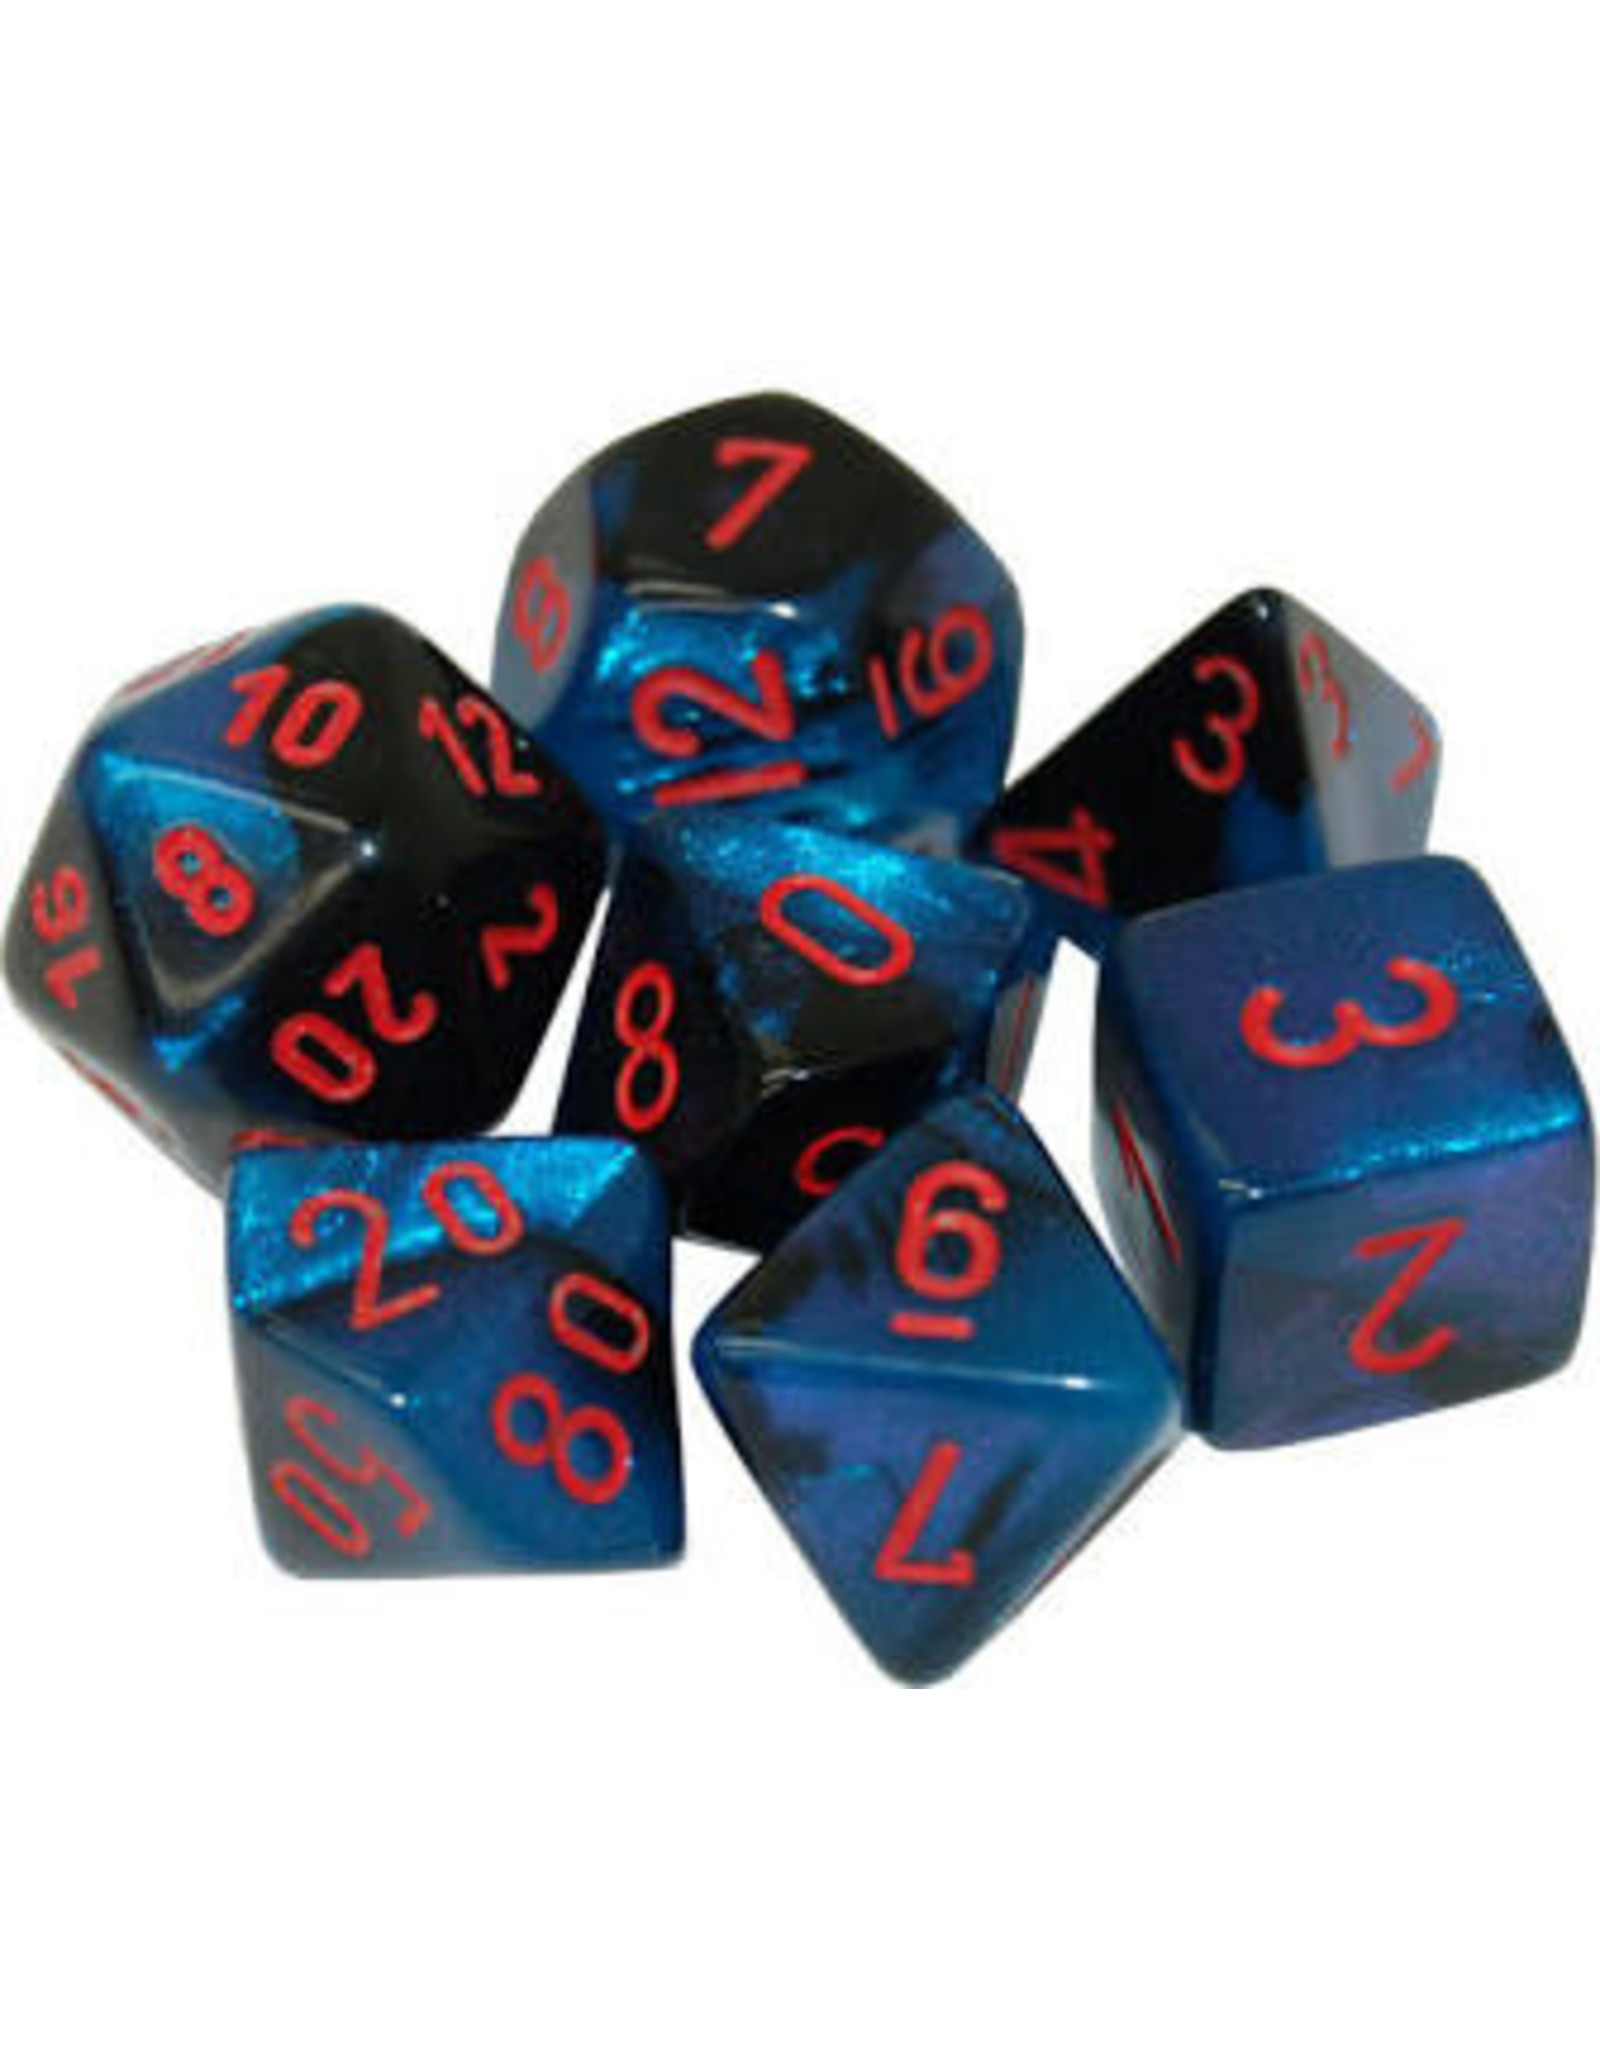 Chessex 7-Set Polyhedral CubeGemini#7 Black Starlight red